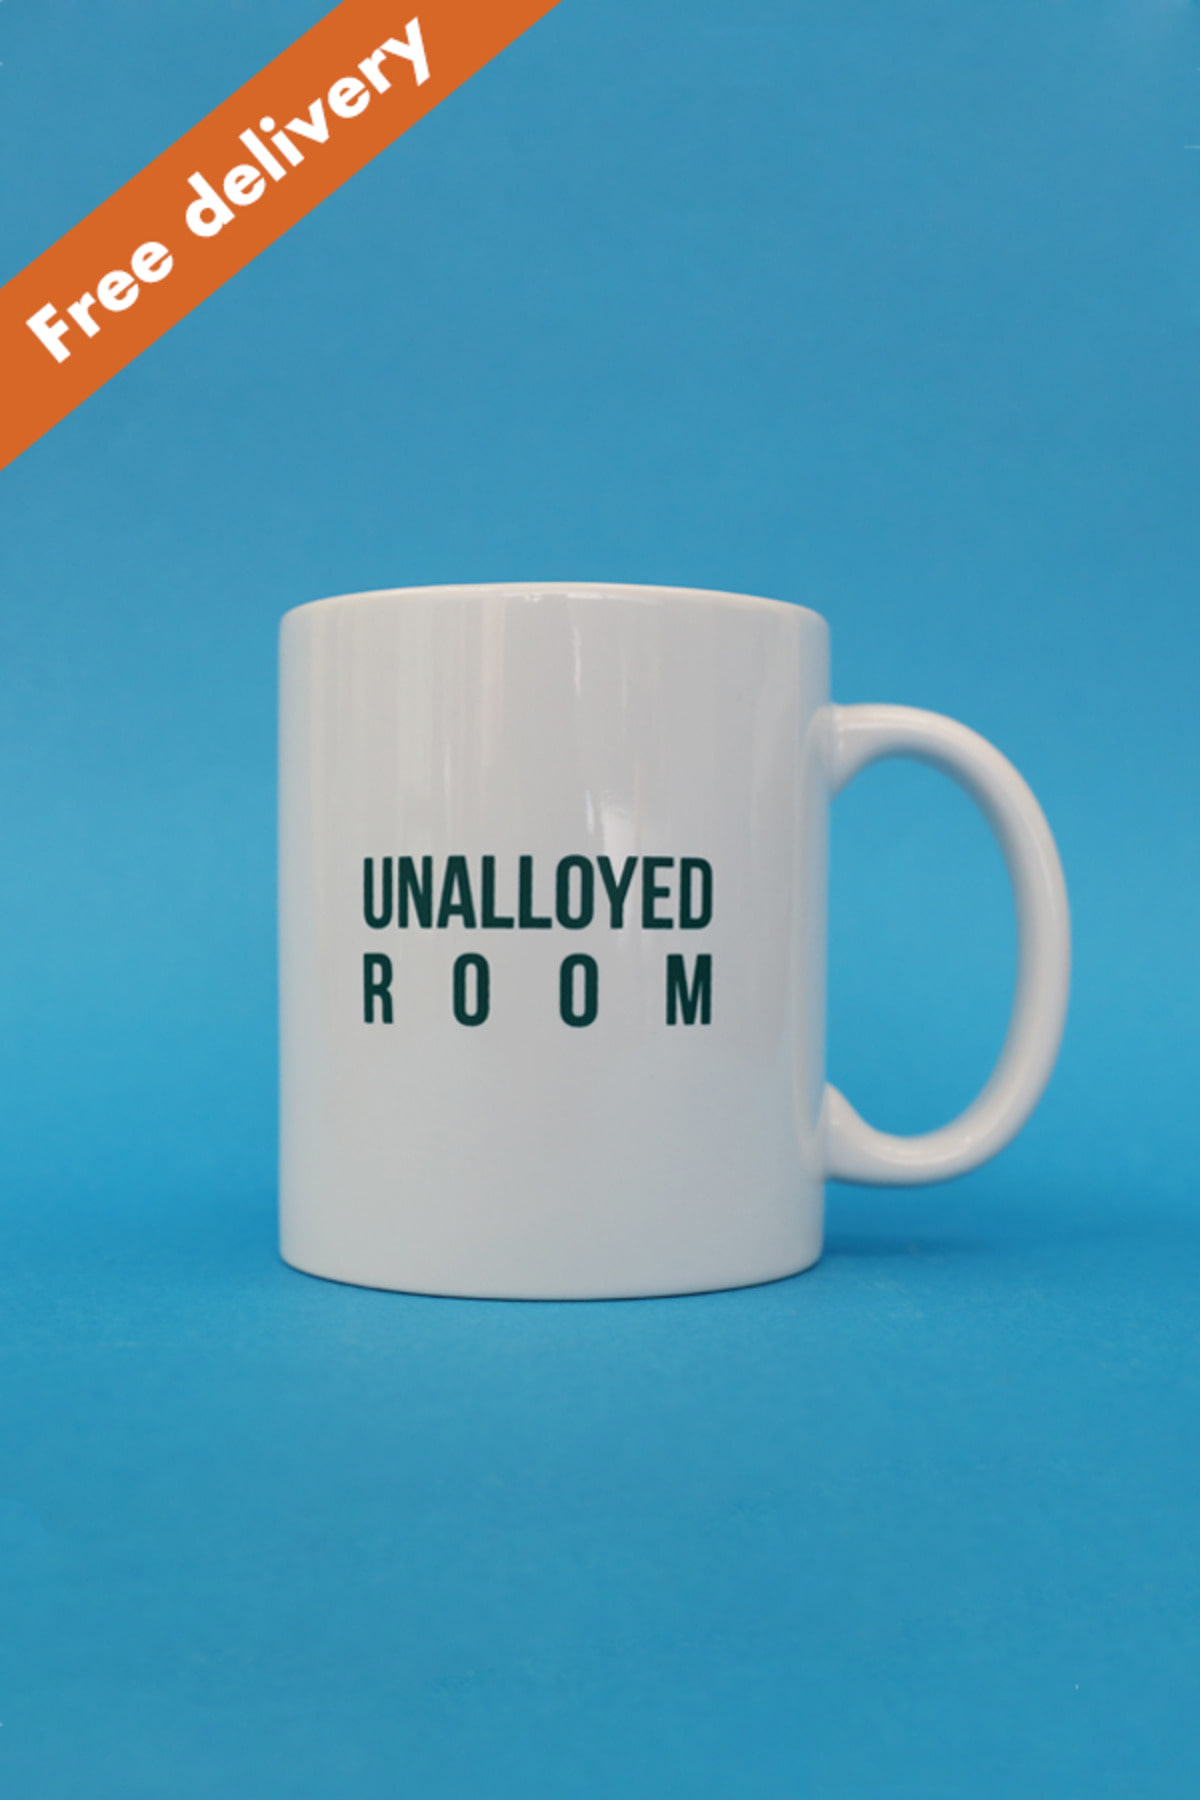 [GOODS] UNALLOYED ROOM MUG / GREEN